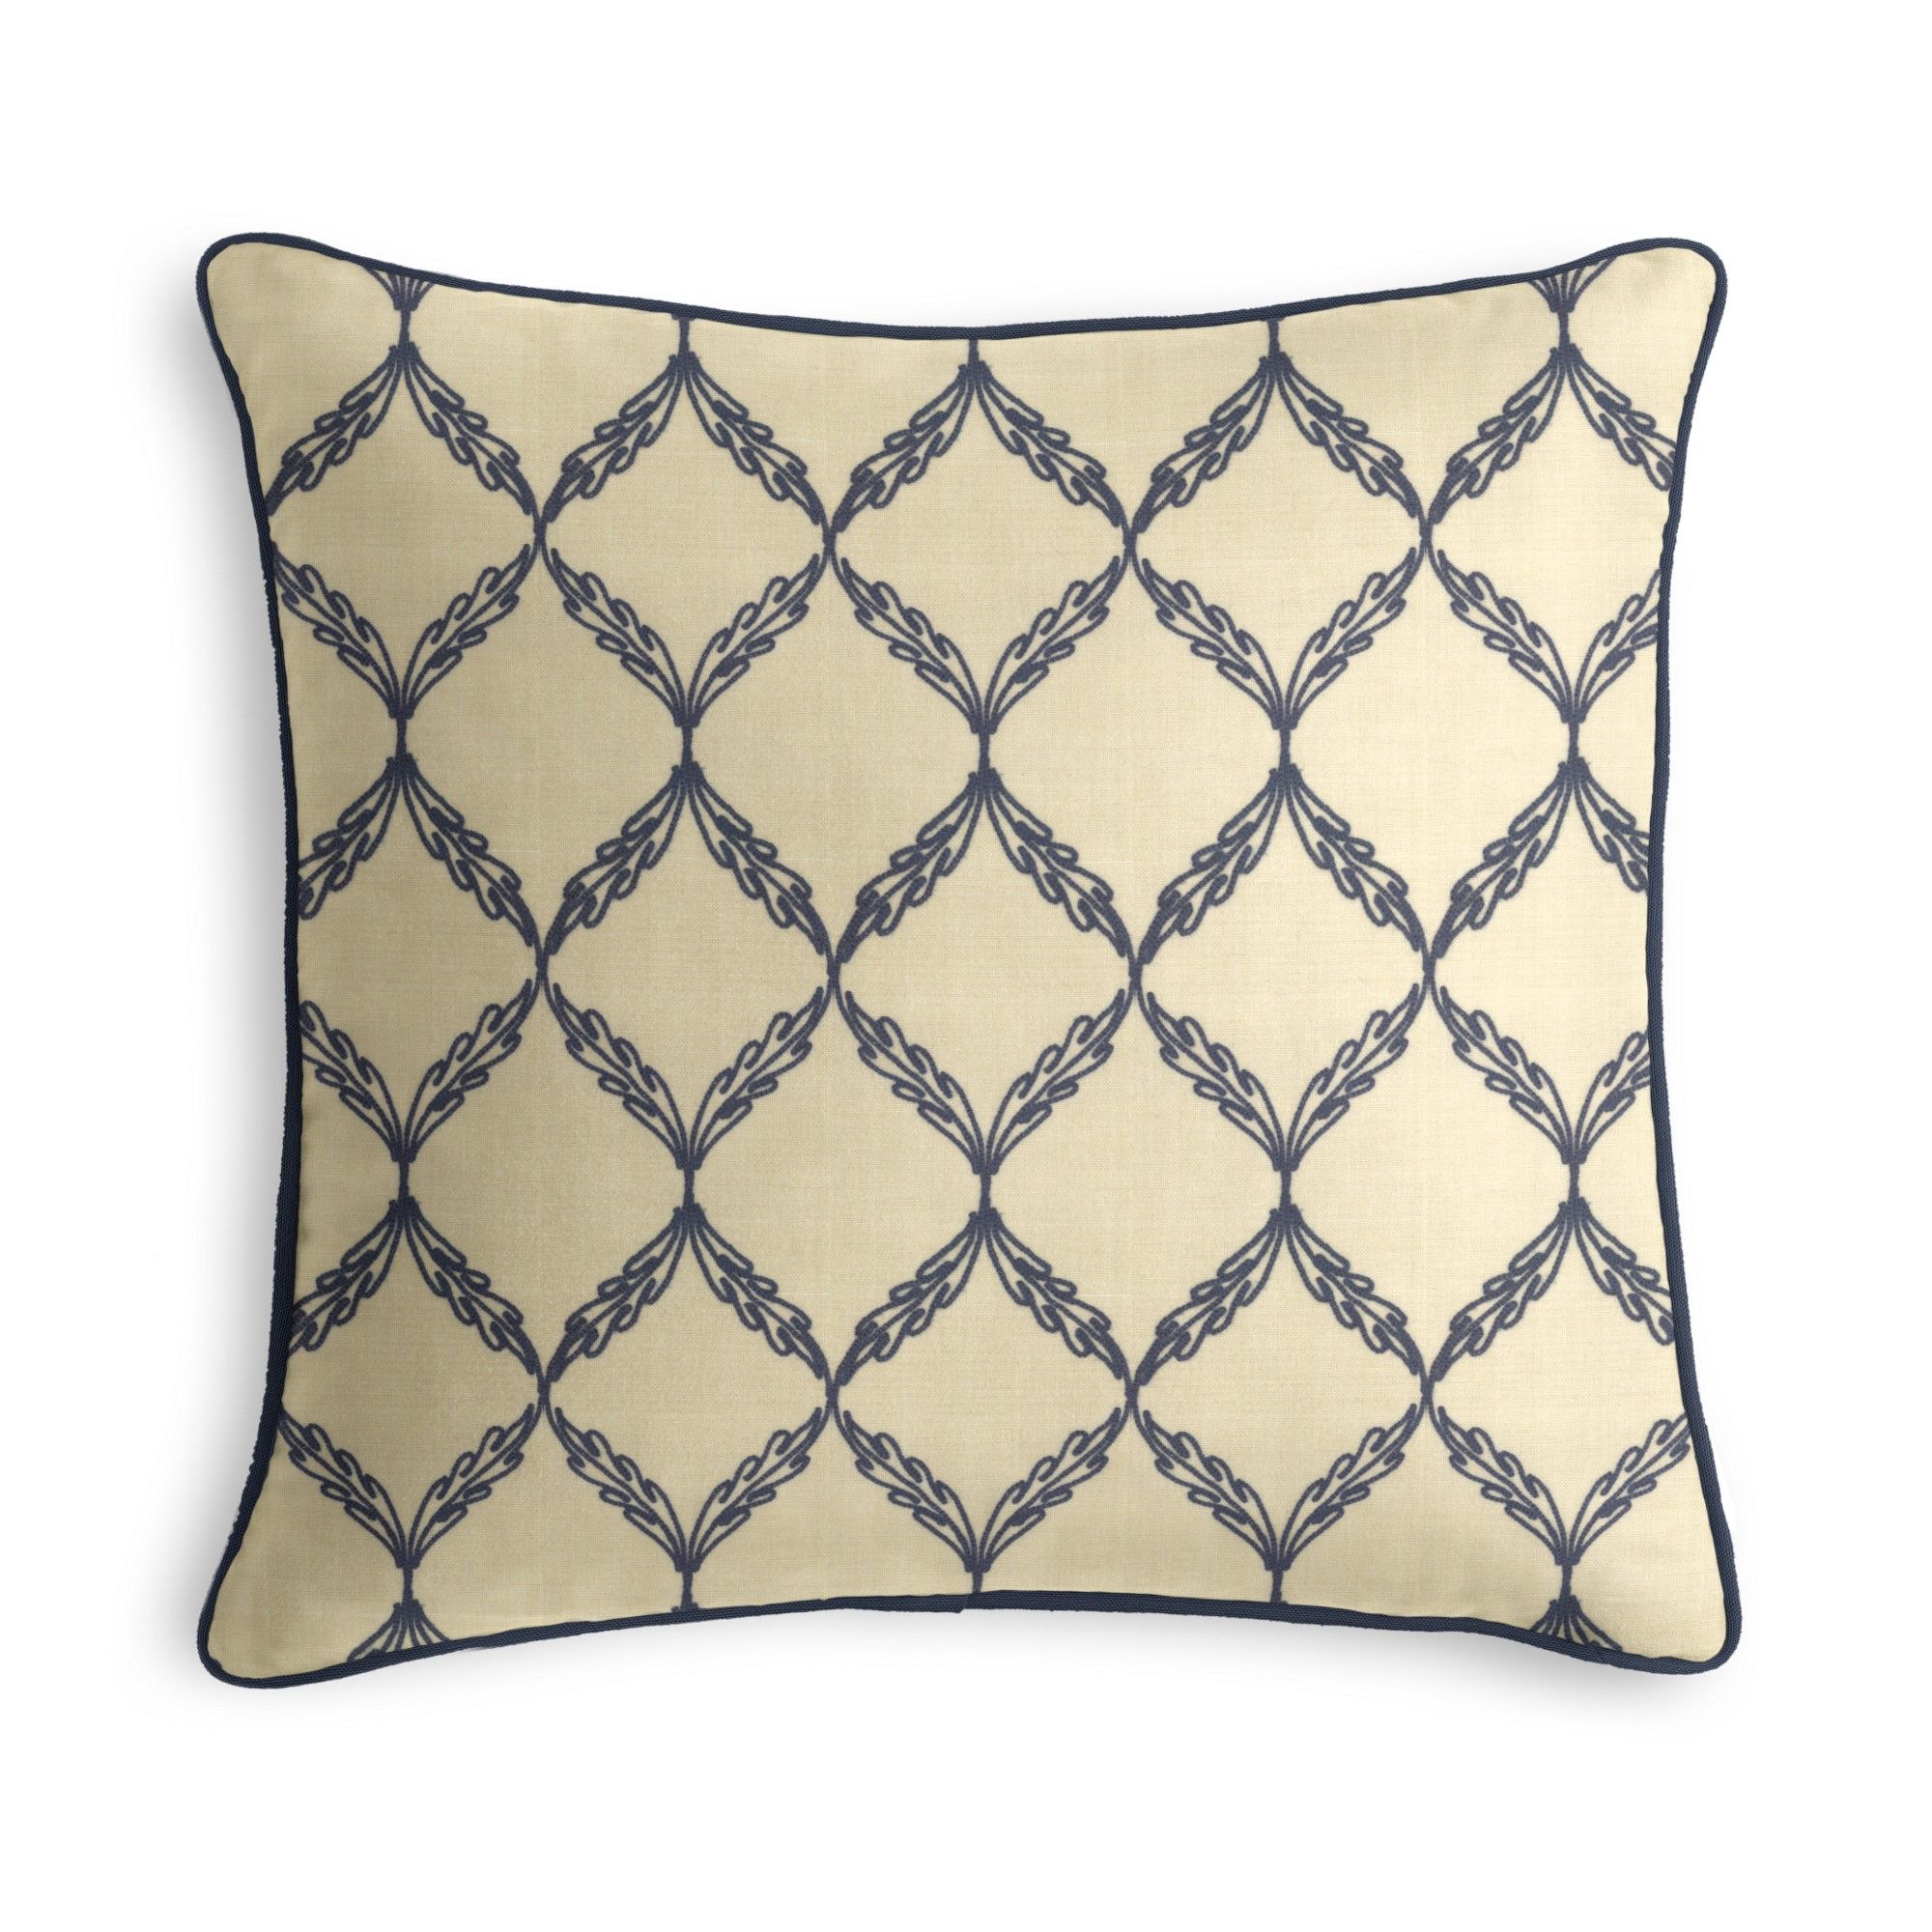 Blue Embroidered Trellis Corded Throw Pillow   #loomdecor